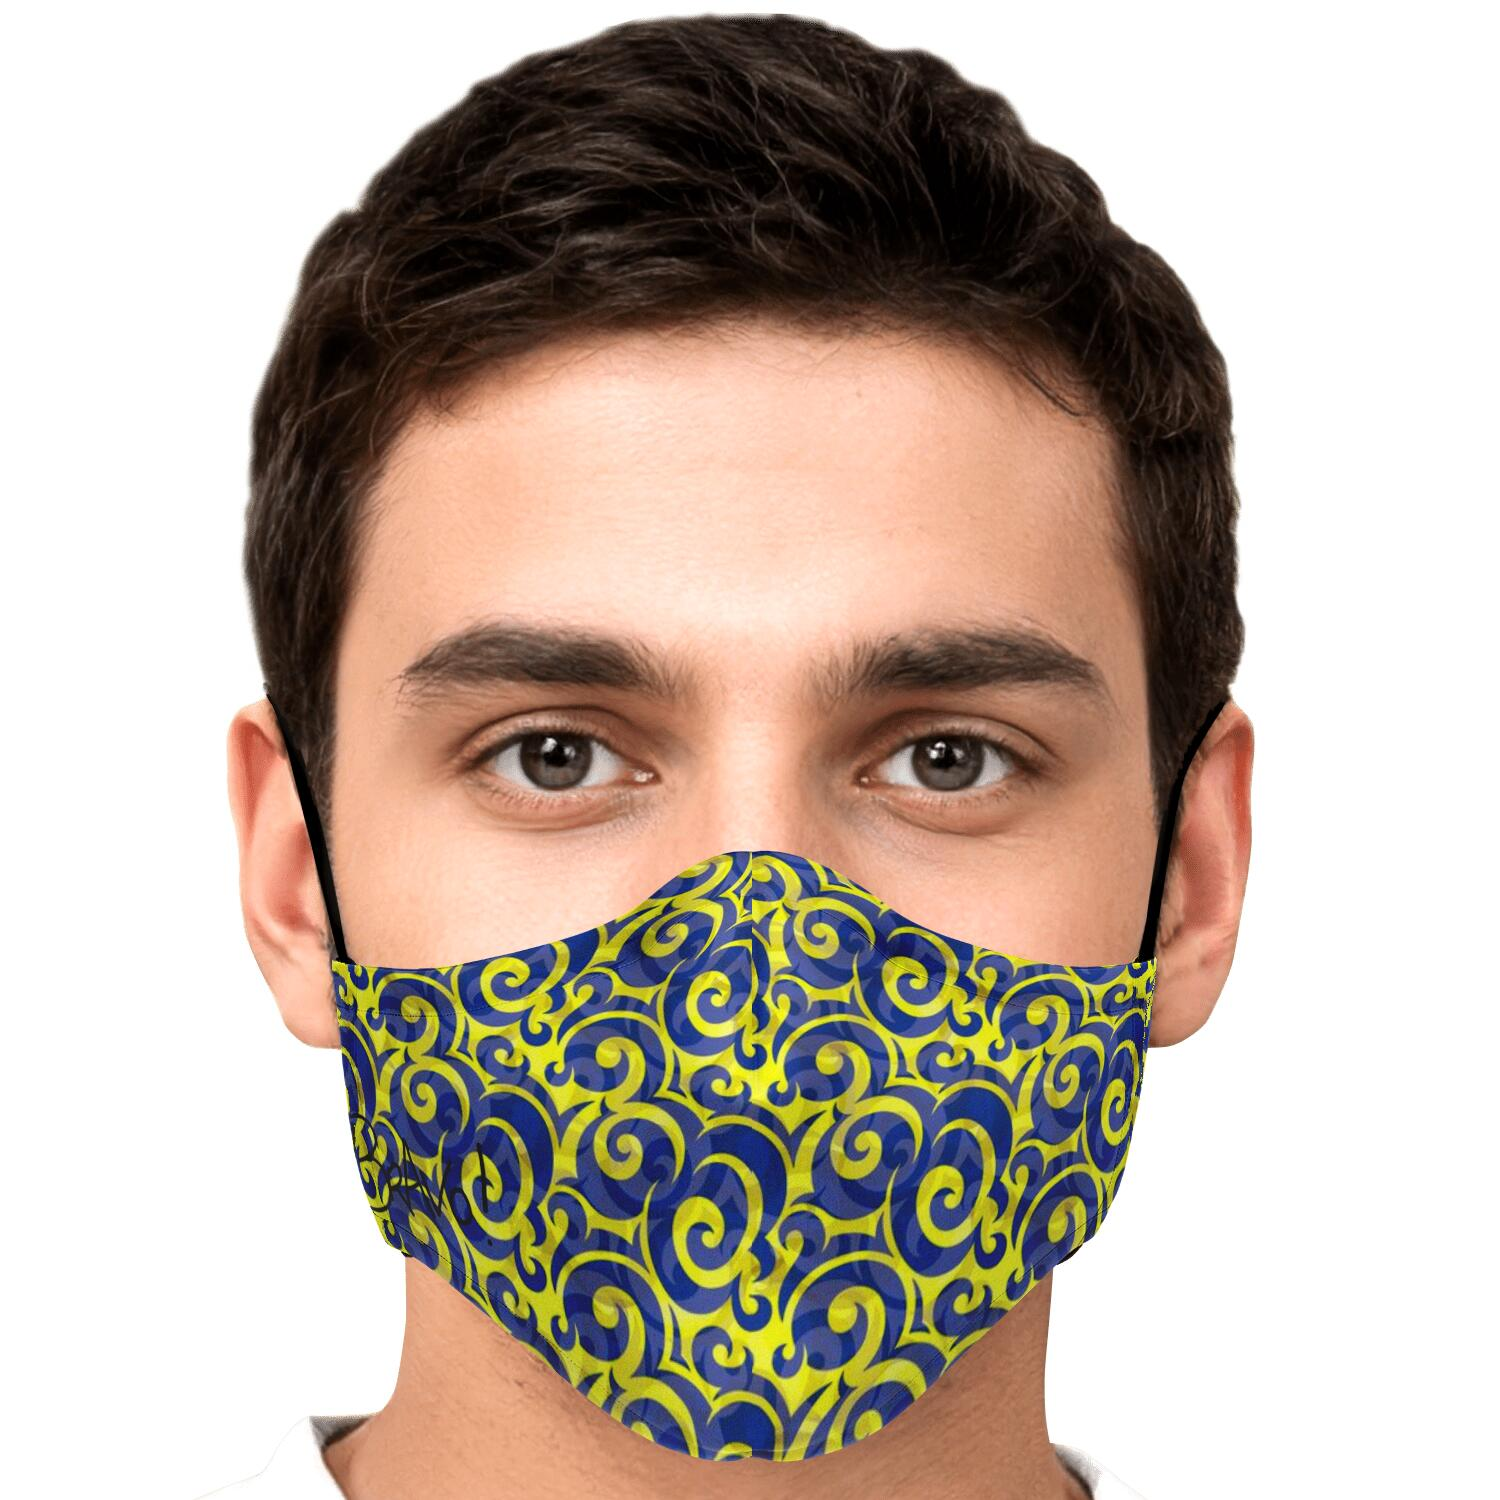 CHIC WAVE PATTERN BLUE YELLOW REUSABLE FACE MASK